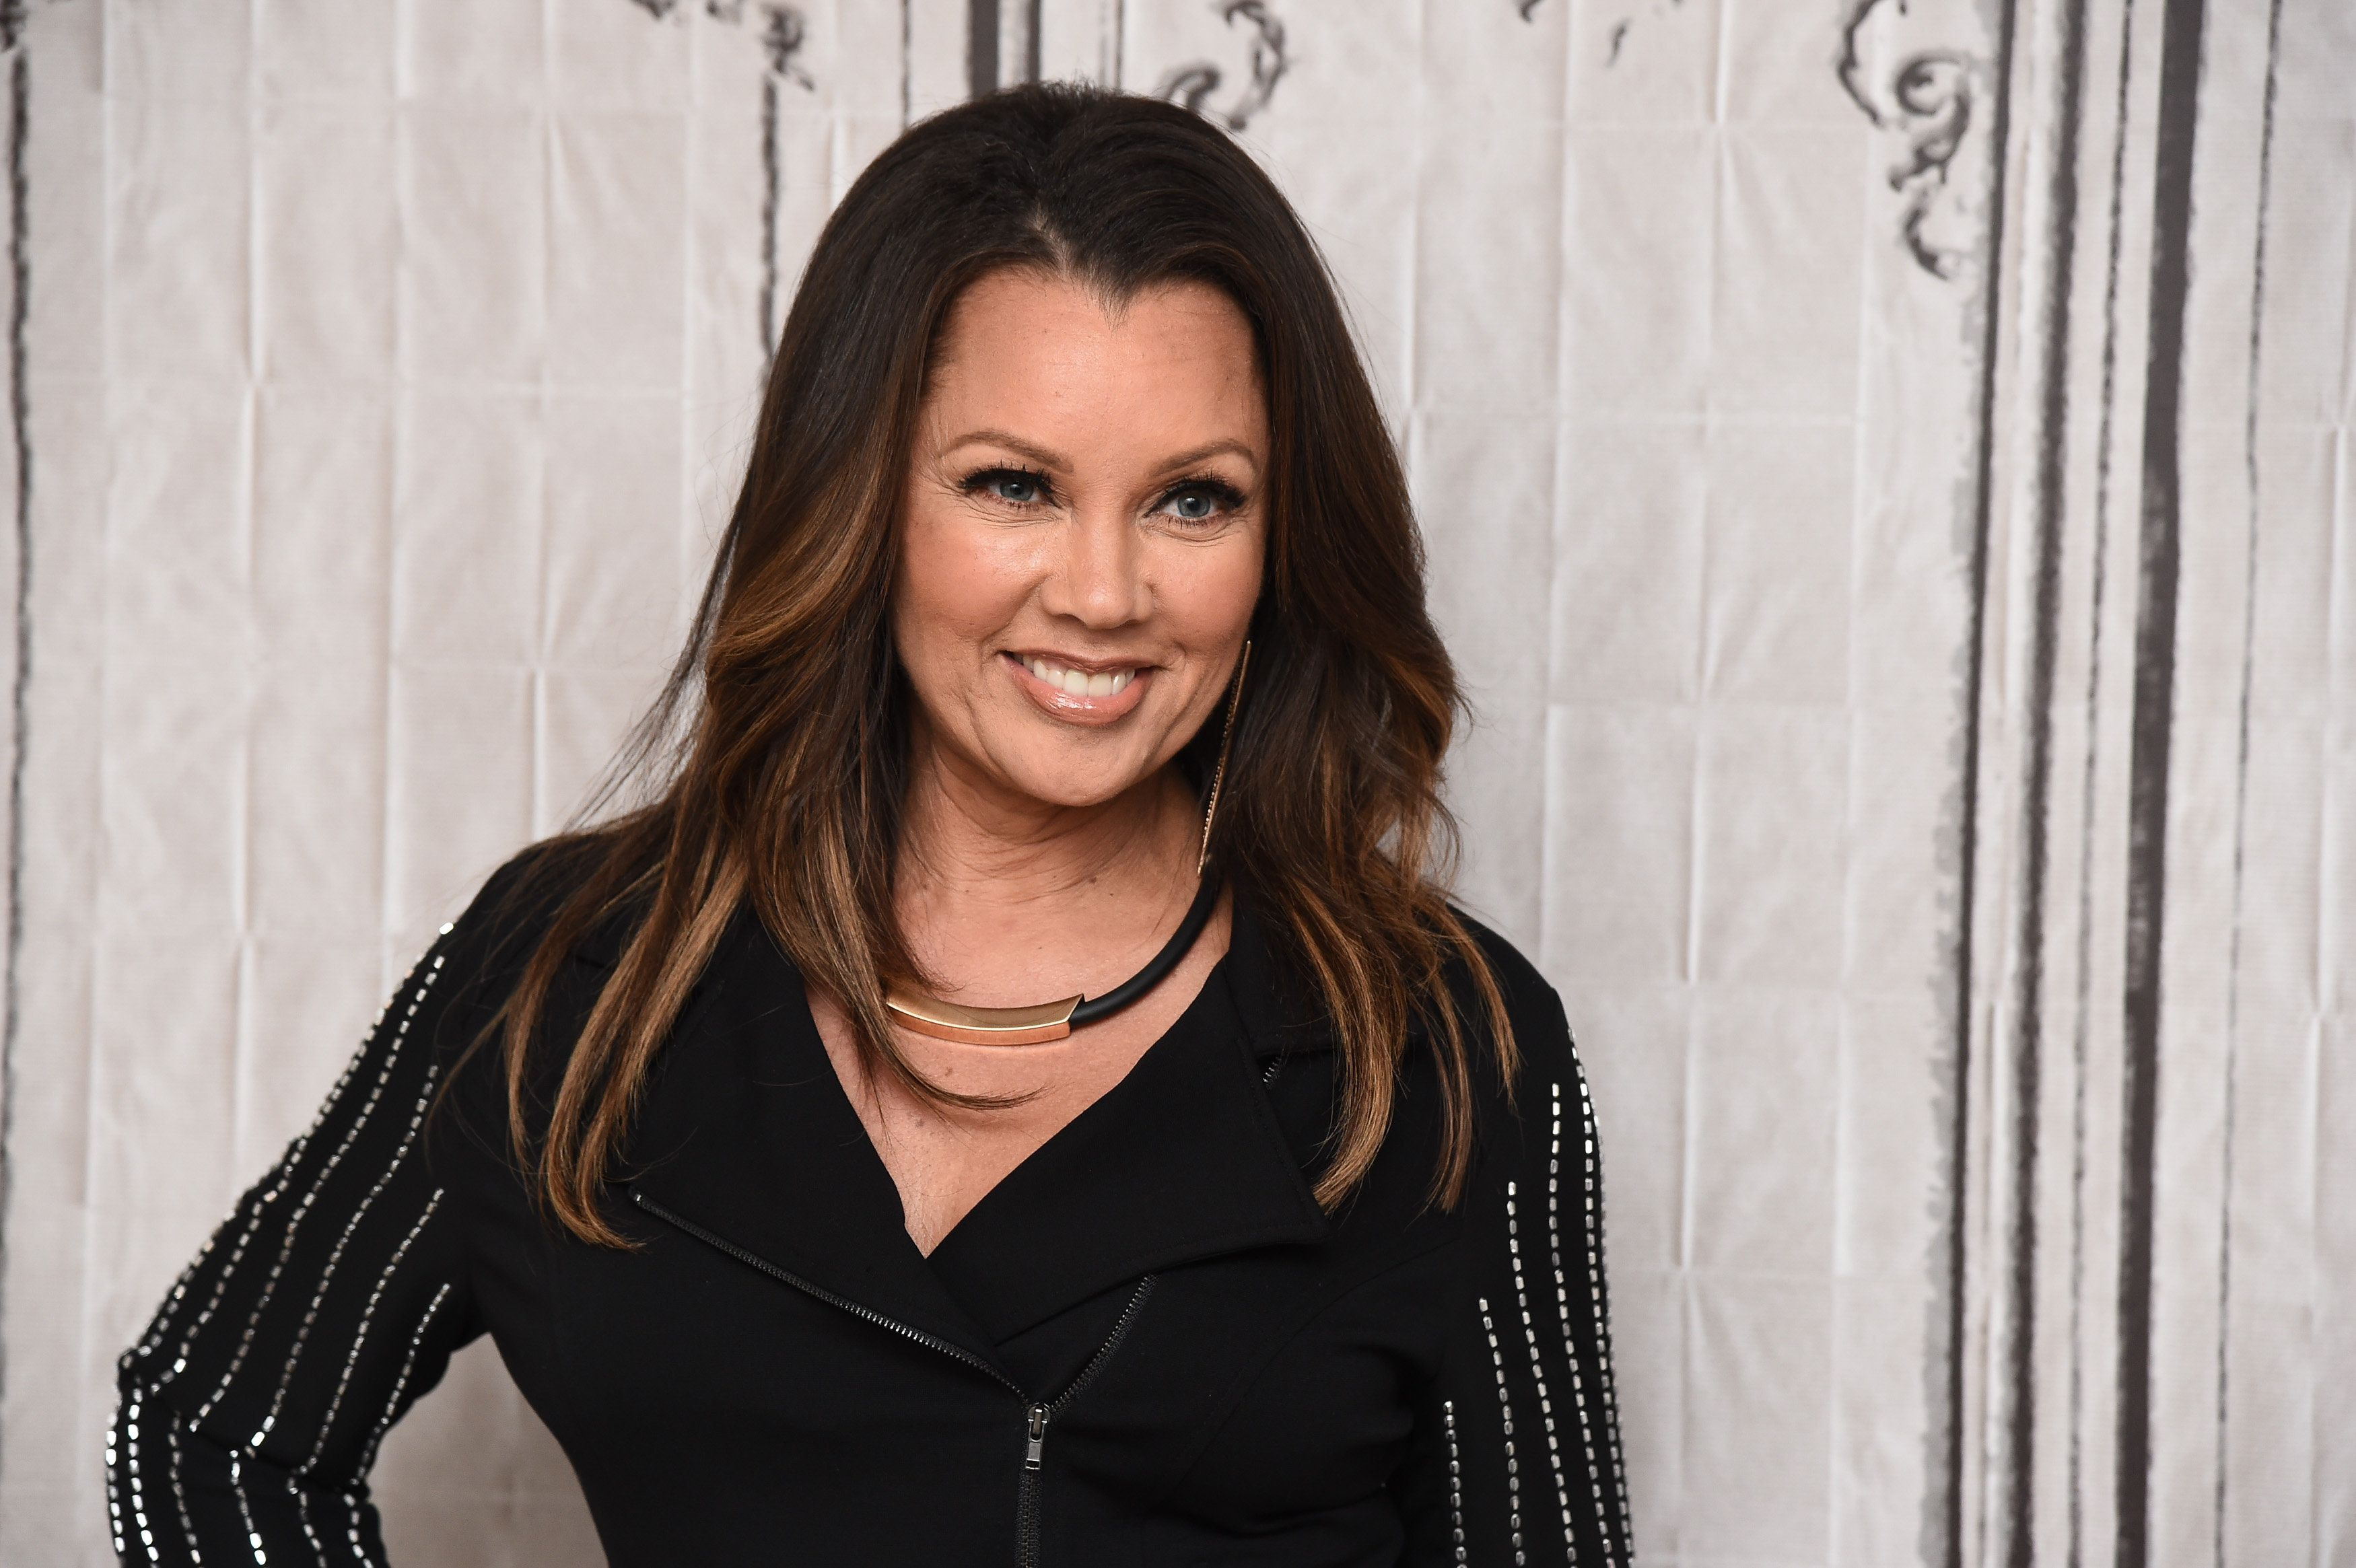 NEW YORK, NY - MARCH 14:  Vanessa Williams attends the AOL Build Speaker Series to discuss her exclusive fashion collection on EVINE Live, 'V' at AOL Studios In New York on March 14, 2016 in New York City.  (Photo by Dave Kotinsky/Getty Images)